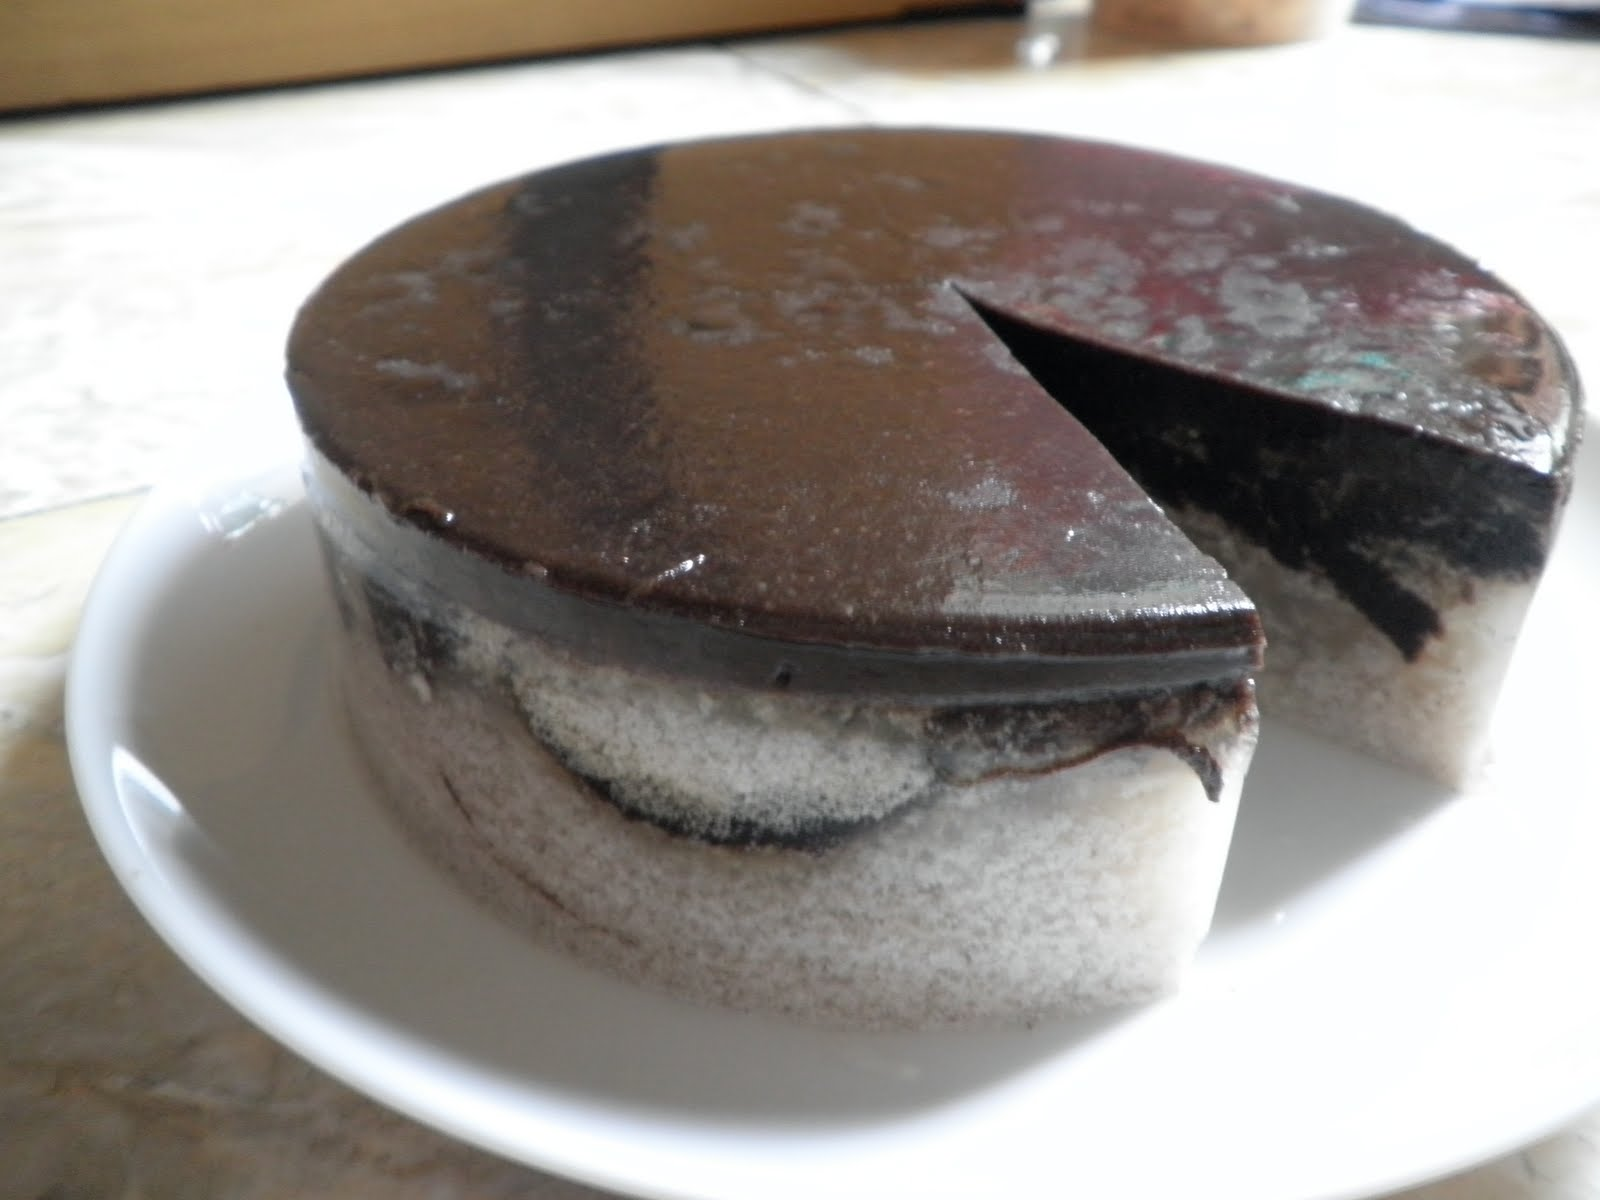 Search Results for: Resep Puding Oreo Ncc